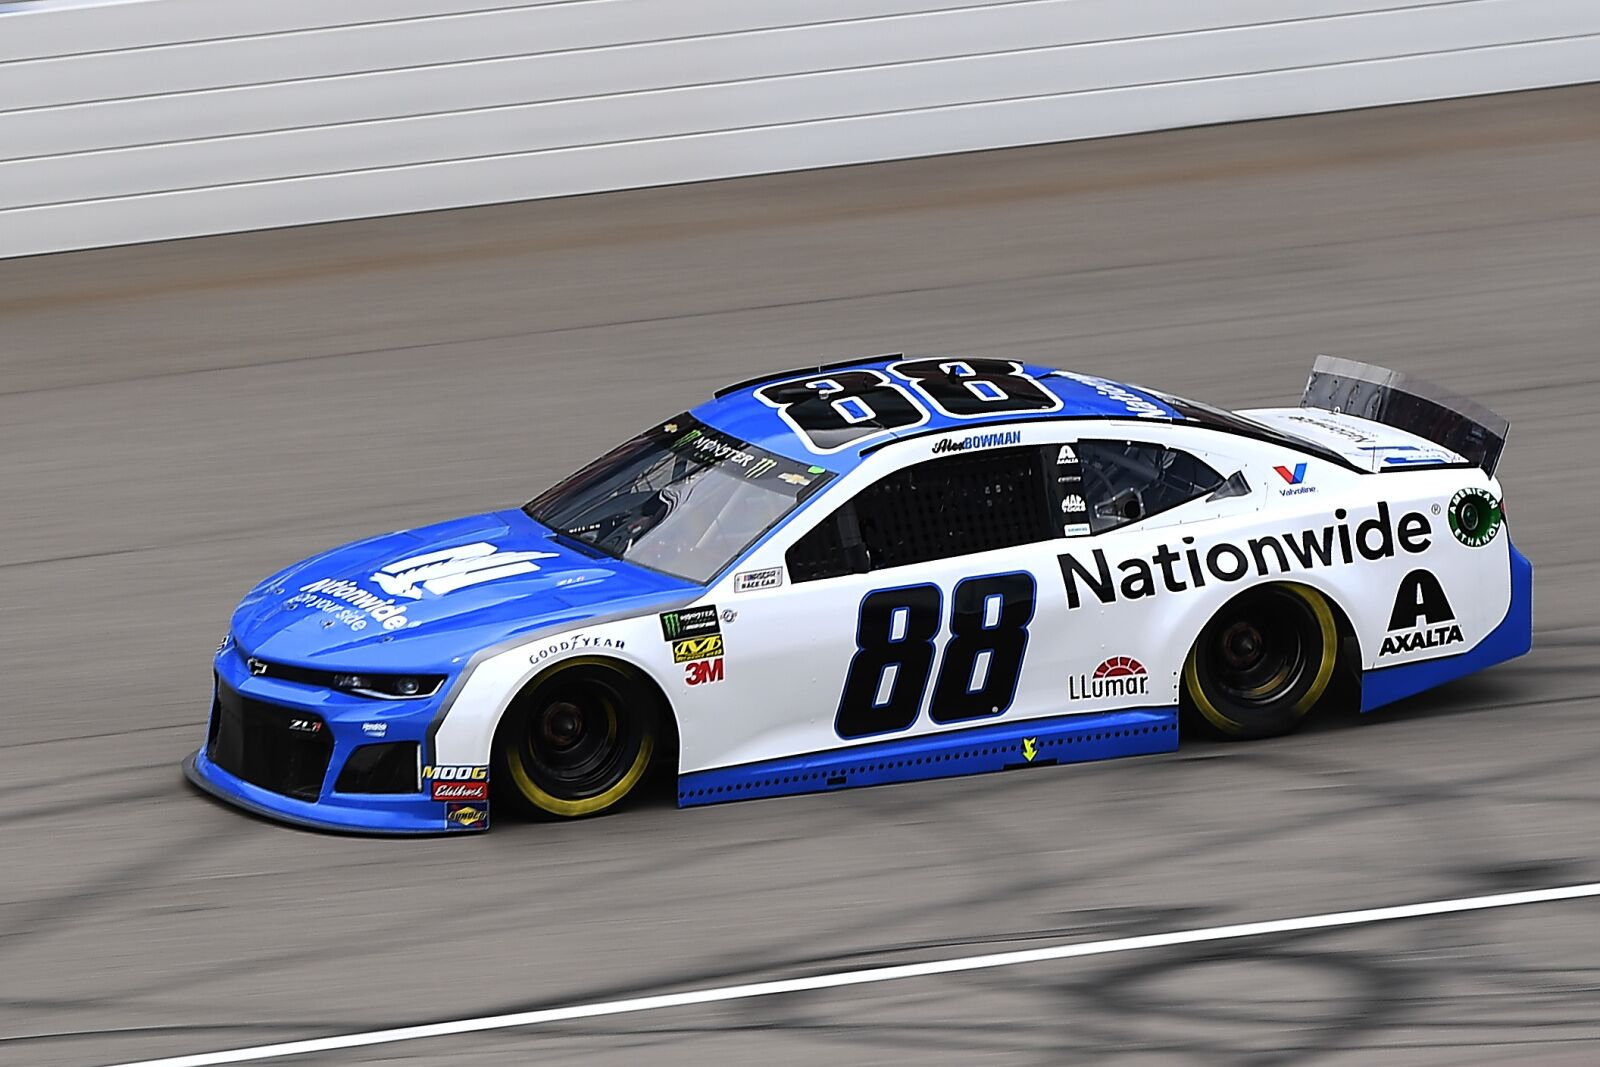 NASCAR: Nationwide to end Hendrick Motorsports sponsorship after 2019